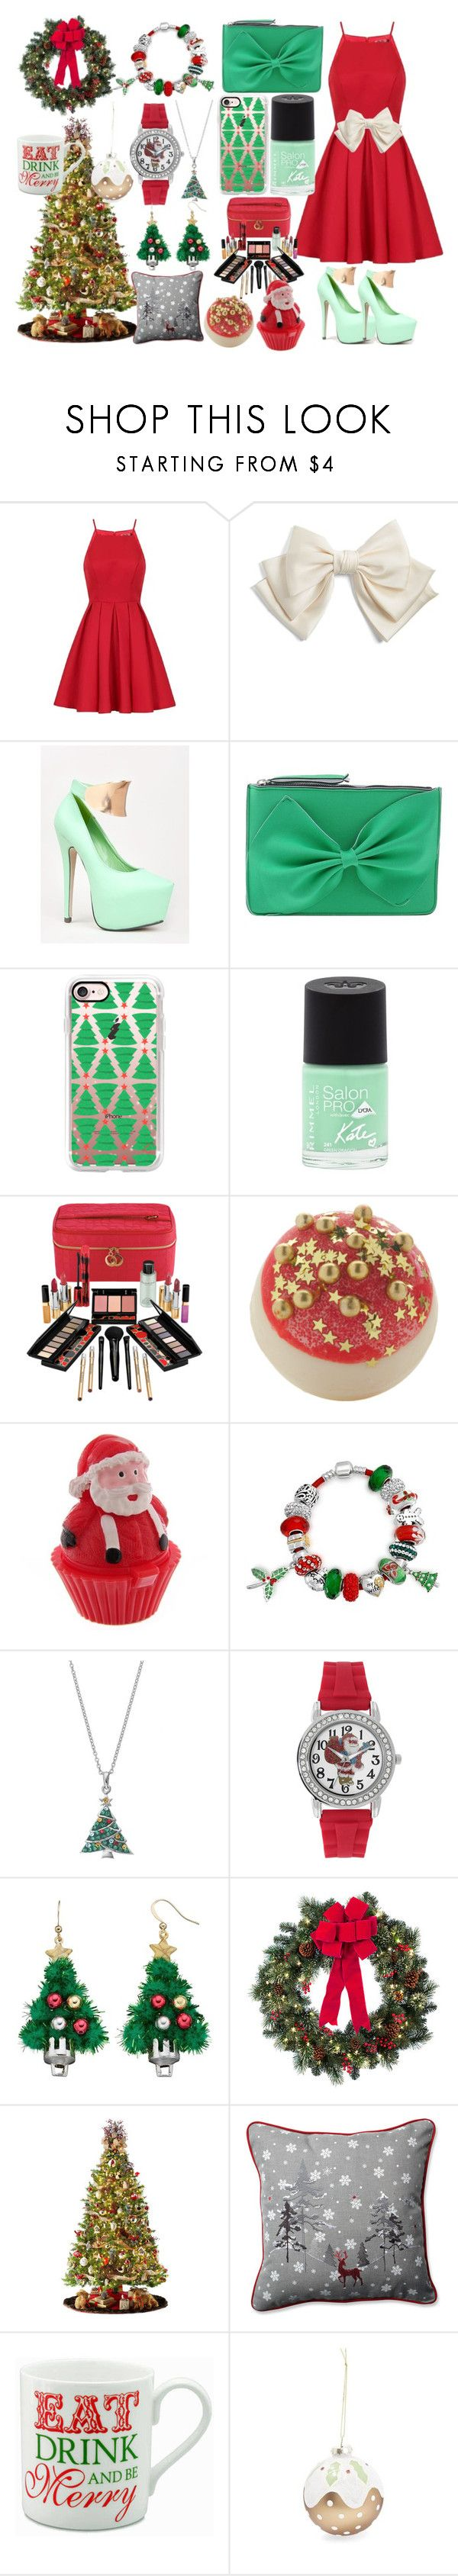 """""""Moden christmas 2016 Style"""" by colourlover24 ❤ liked on Polyvore featuring Chi Chi, Cara, Kiss Kouture, Leghilà, Casetify, Rimmel, Elizabeth Arden, Bling Jewelry, Mixit and Improvements"""